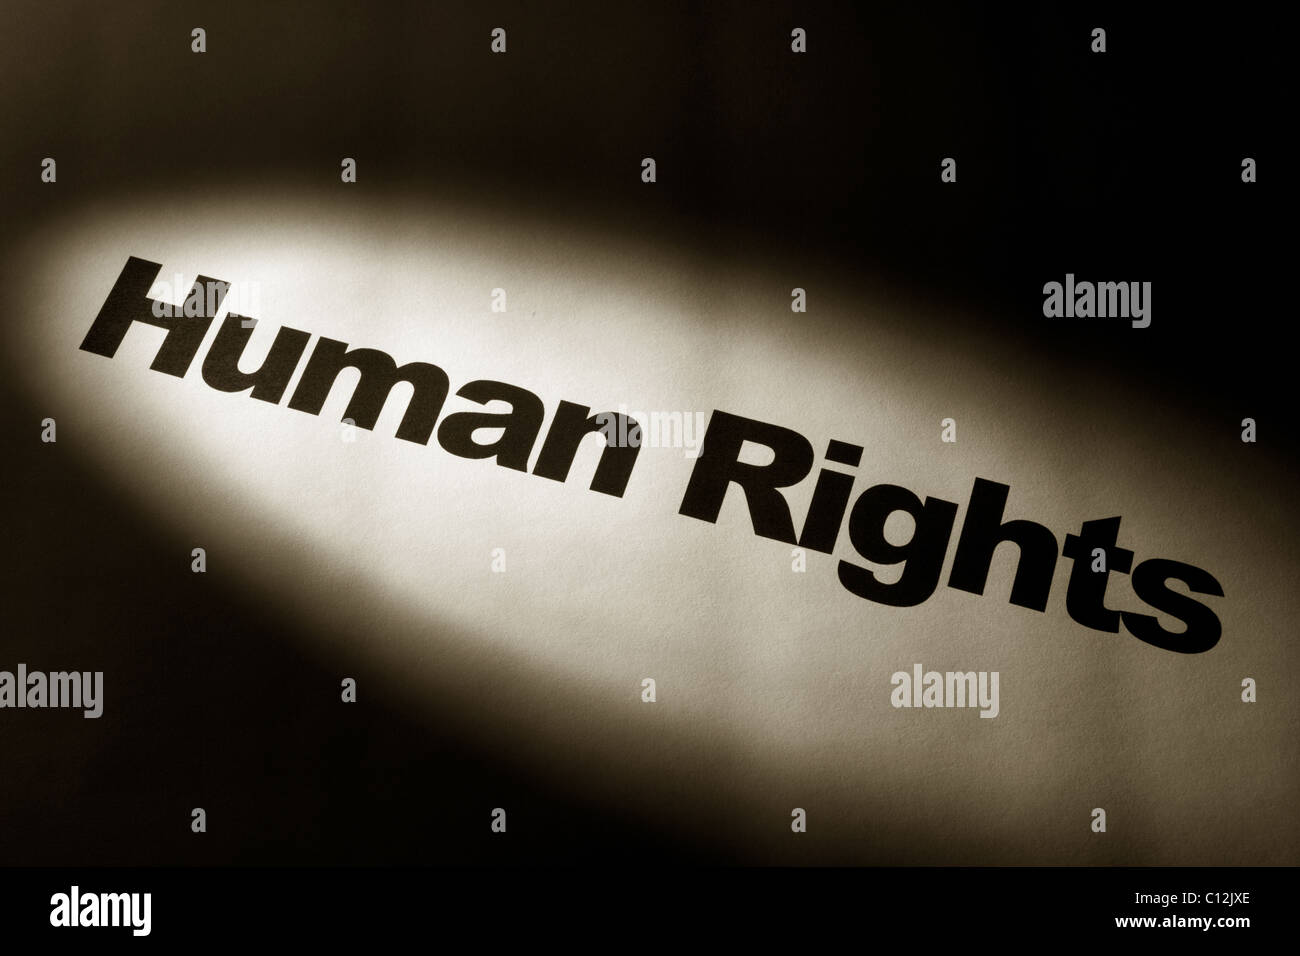 light and word of Human Rights for background - Stock Image